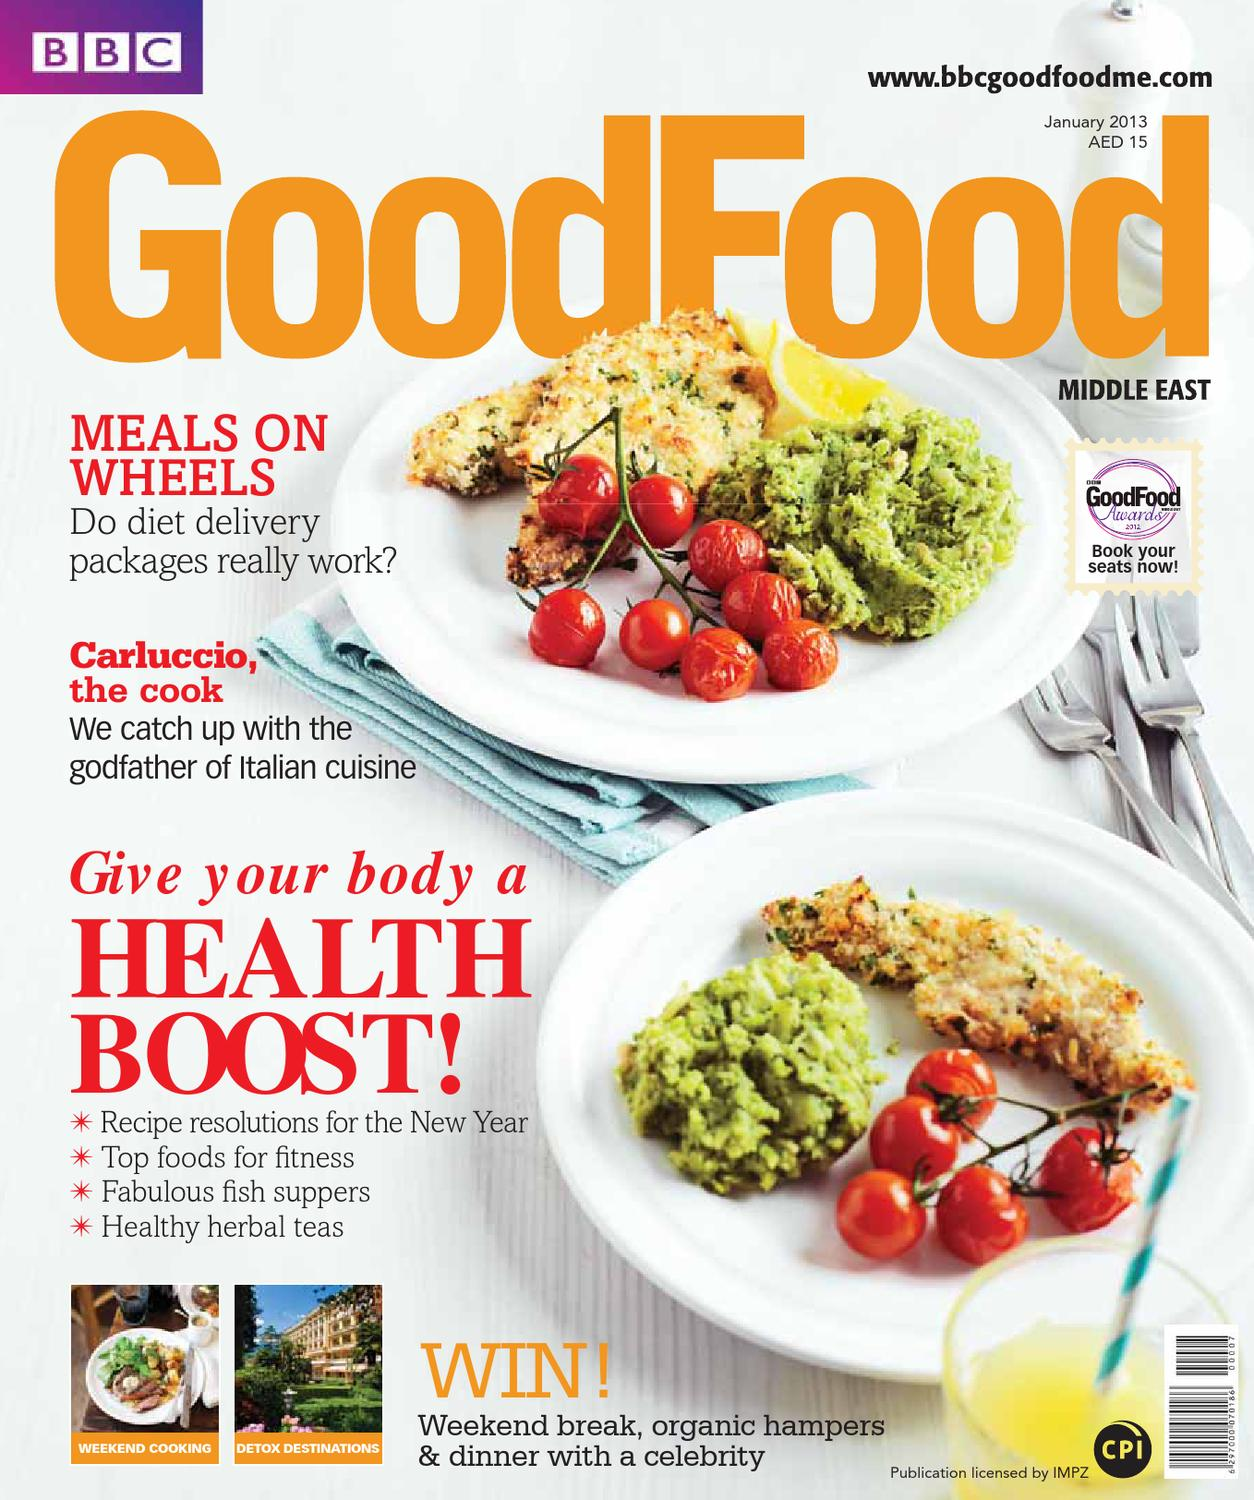 Bbc good food middle east magazine january 2013 by bbc good food bbc good food middle east magazine january 2013 by bbc good food me issuu forumfinder Images